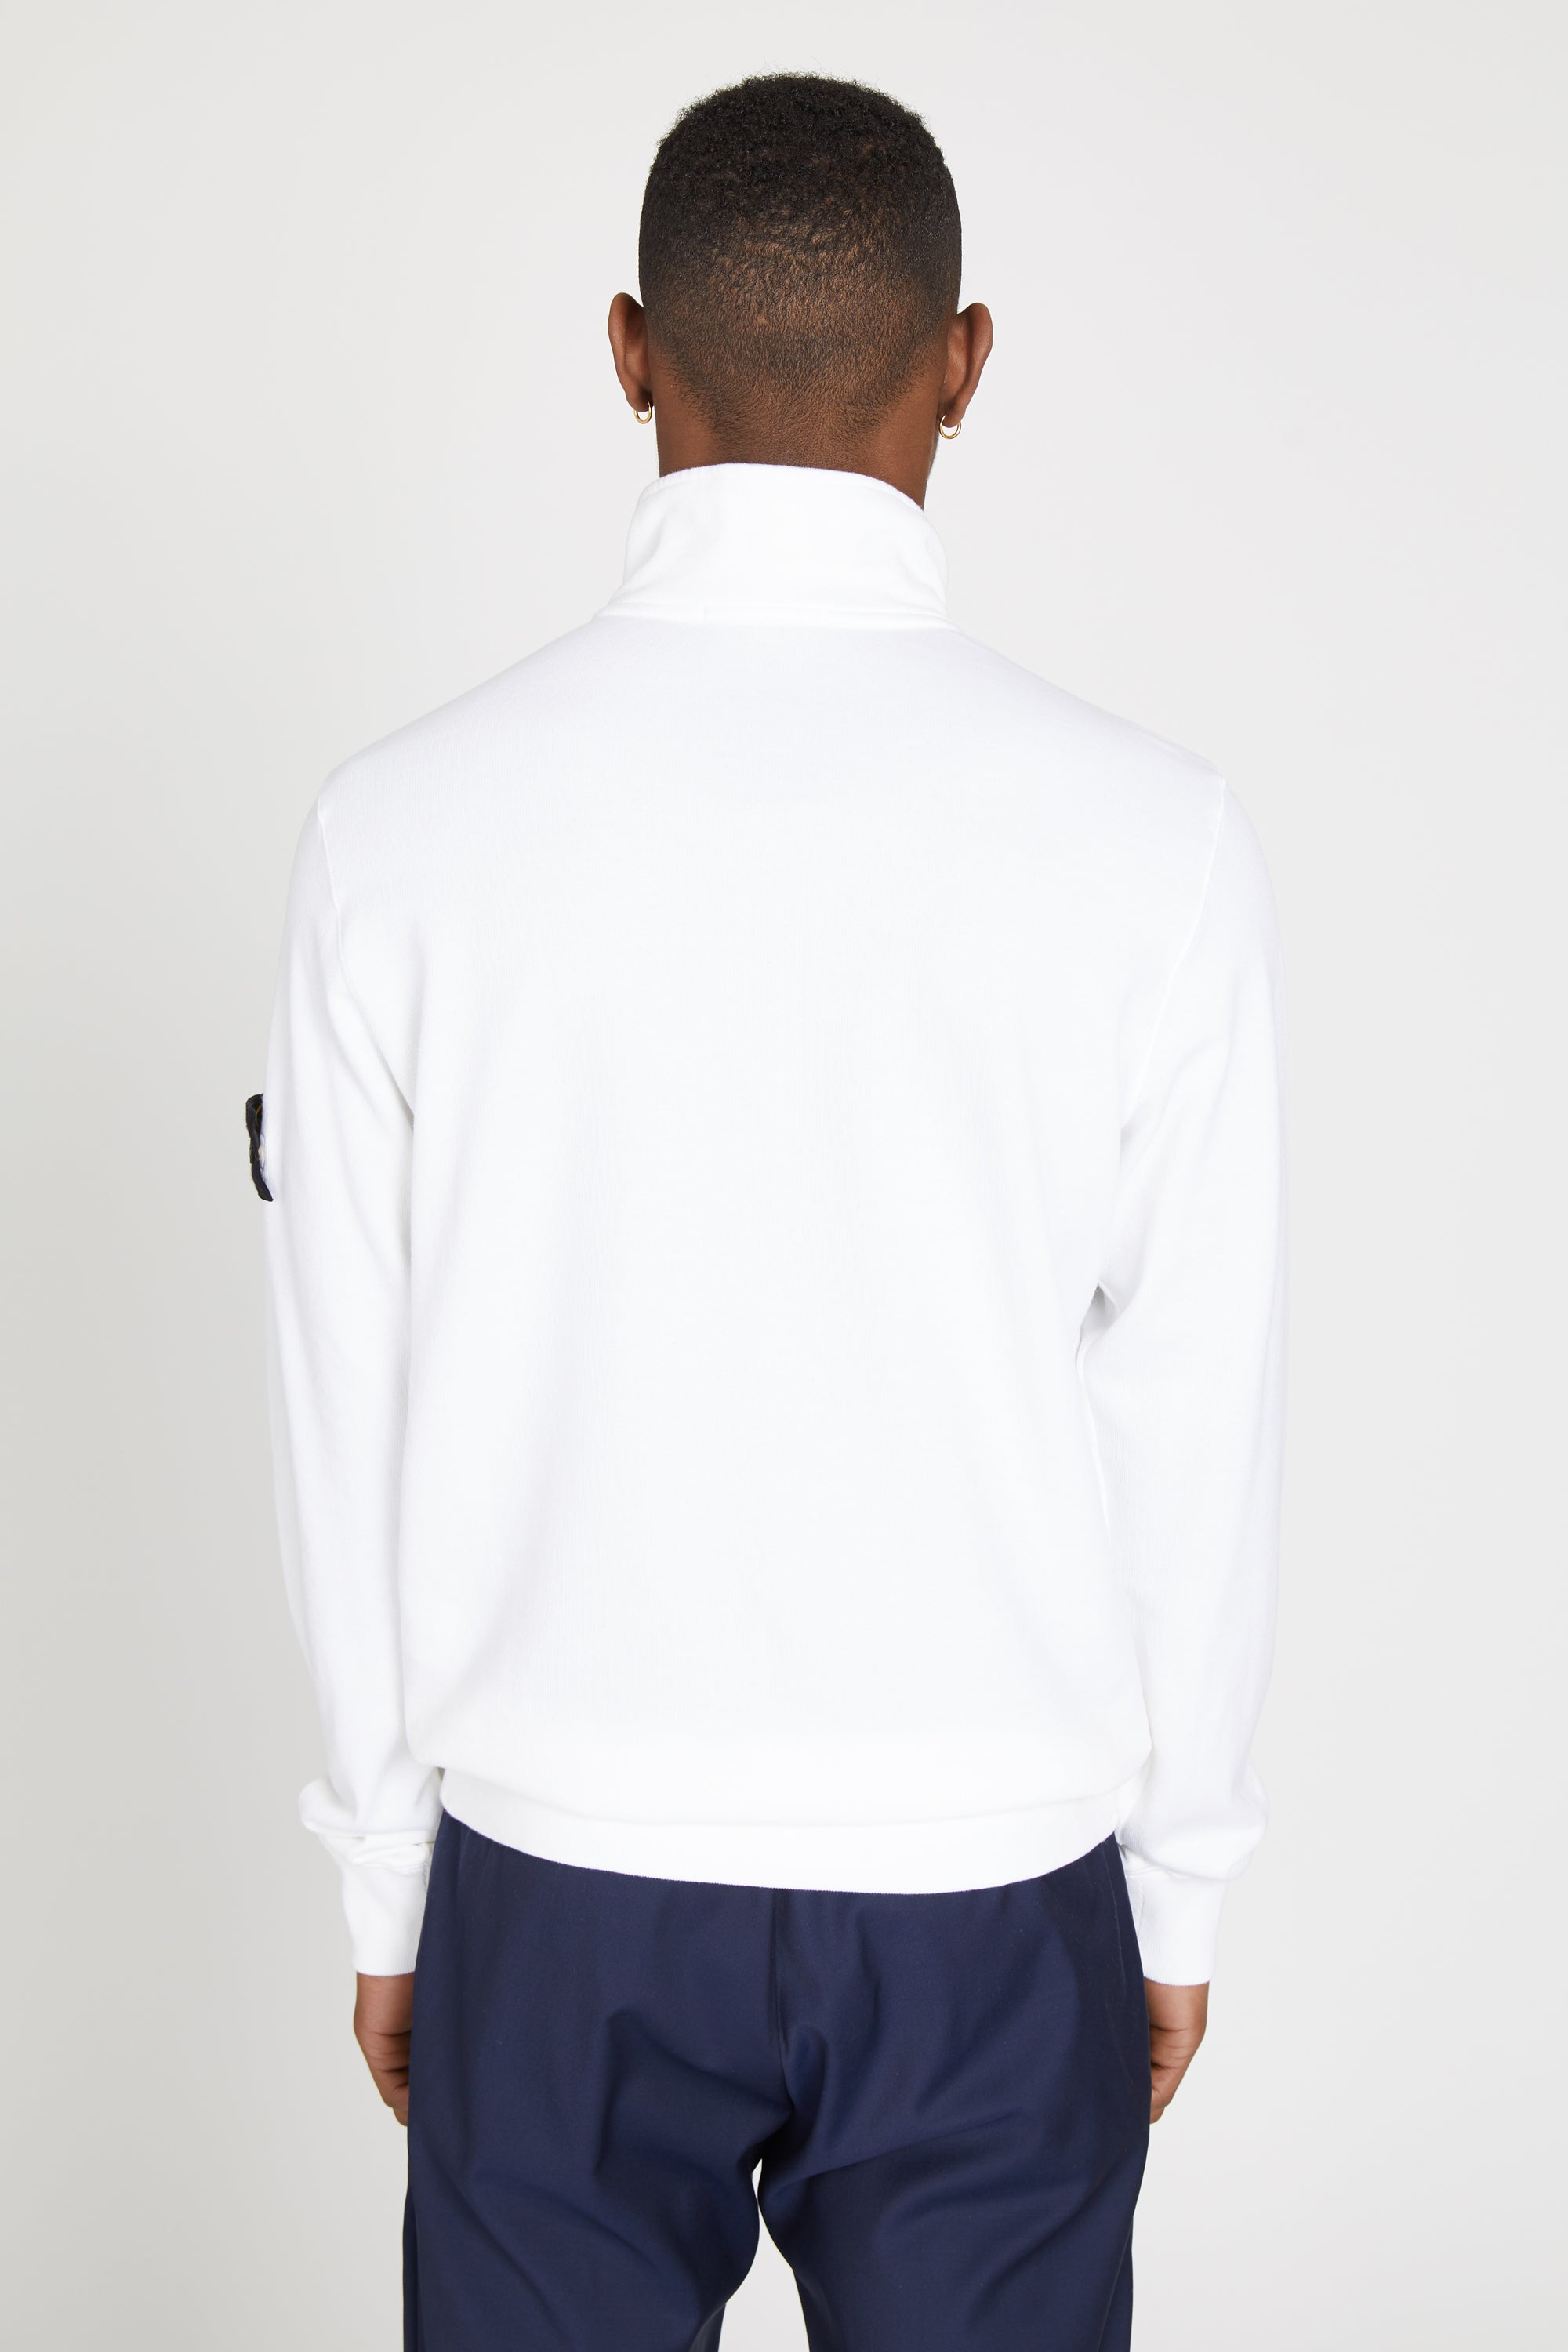 65556 LIGHT MAKO FLEECE HALF ZIP SWEATSHIRT - WHITE